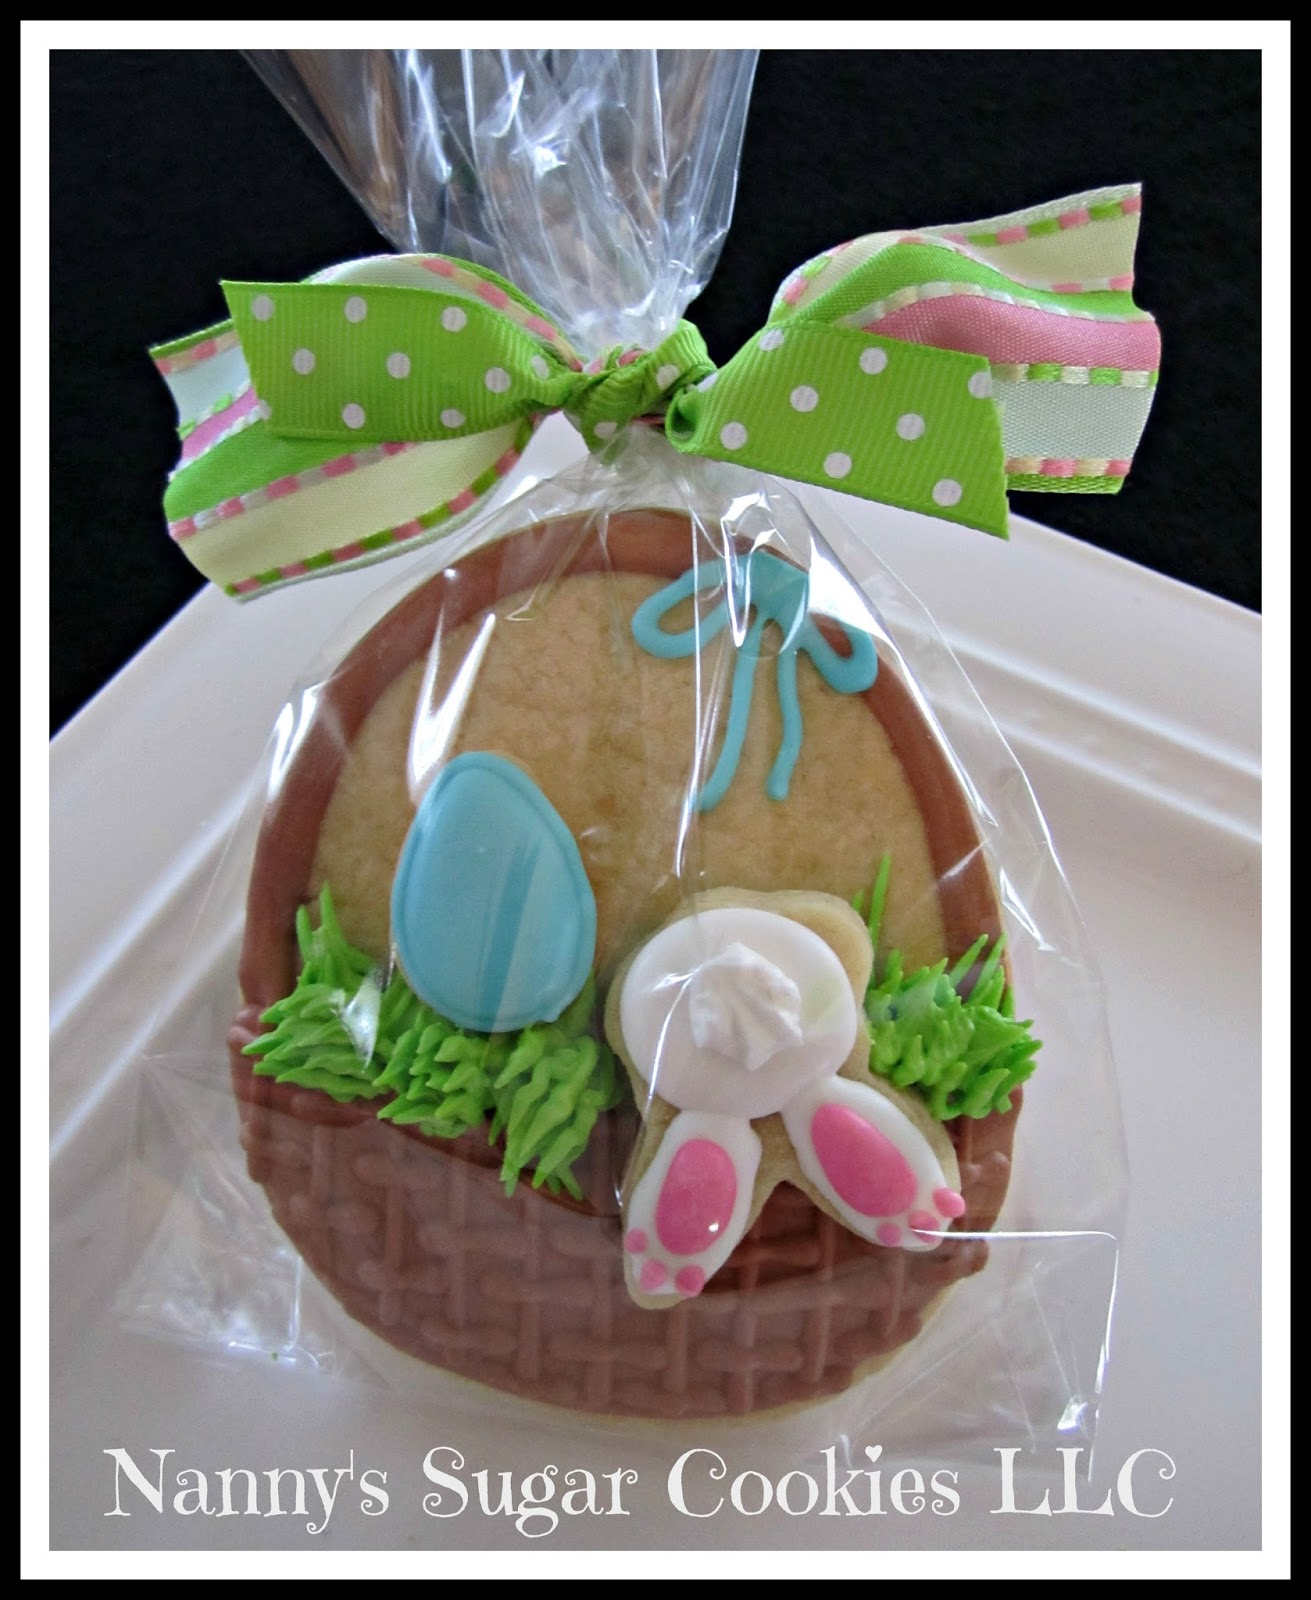 Nannys sugar cookies llc the easter bunny is coming to town bunny climbing into an easter basket negle Images